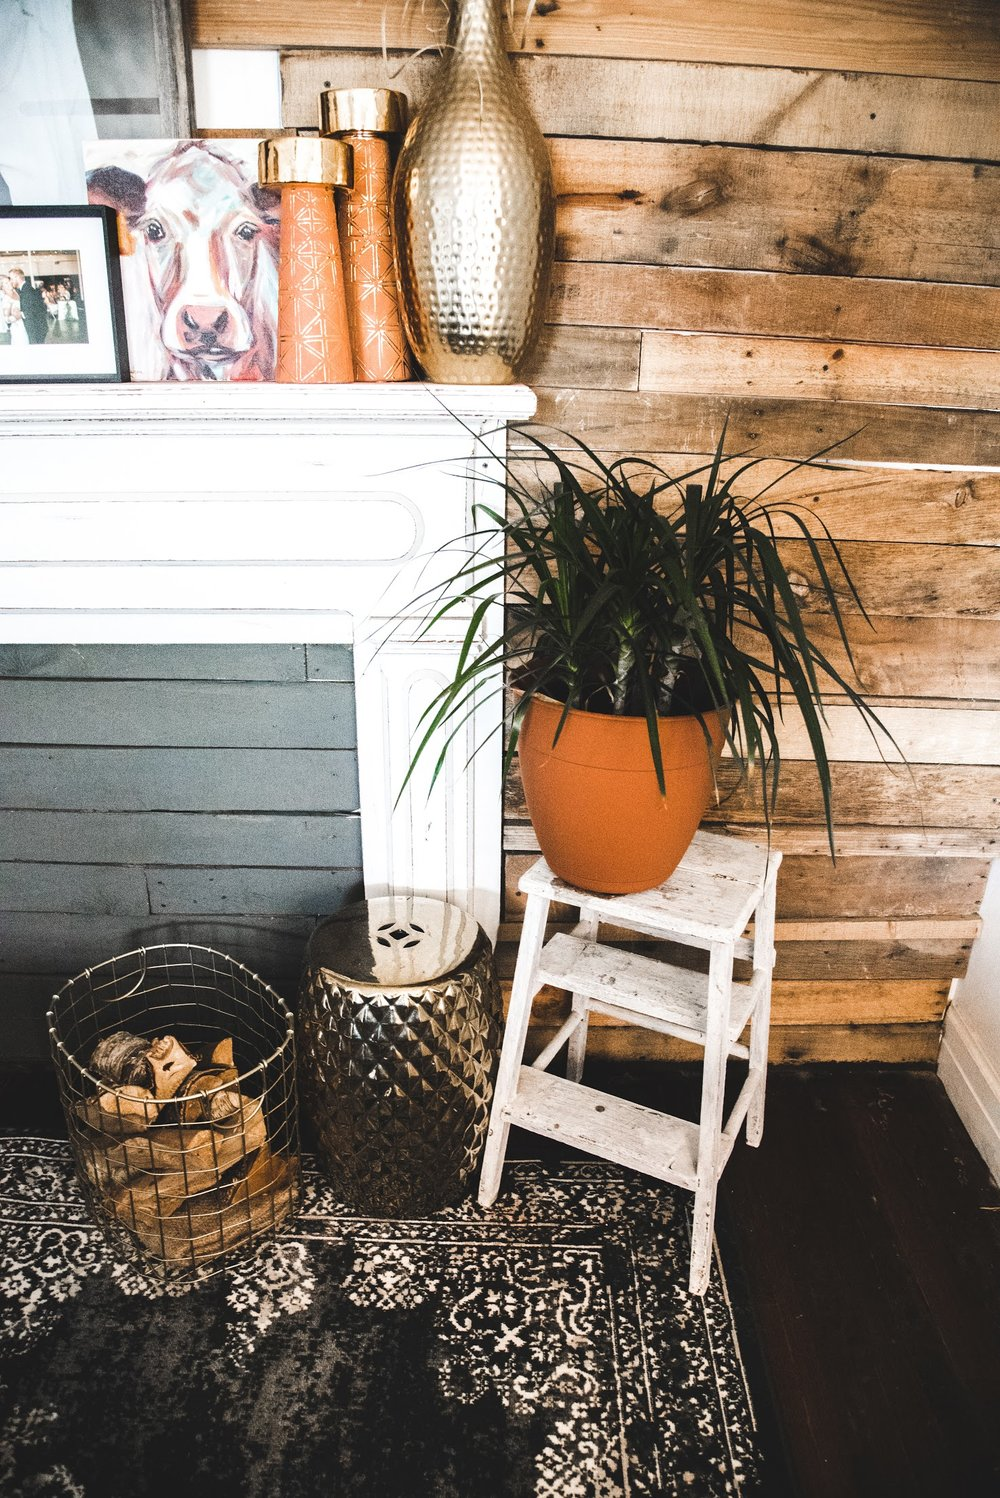 Top 2018 Design Trends Southern Modern Mom Found This One To The Be Easiest Follow 1 Are House Plants New Kids Answer Is Yes Of Ways Trend Up Your Go Local Nursery And Find A Few